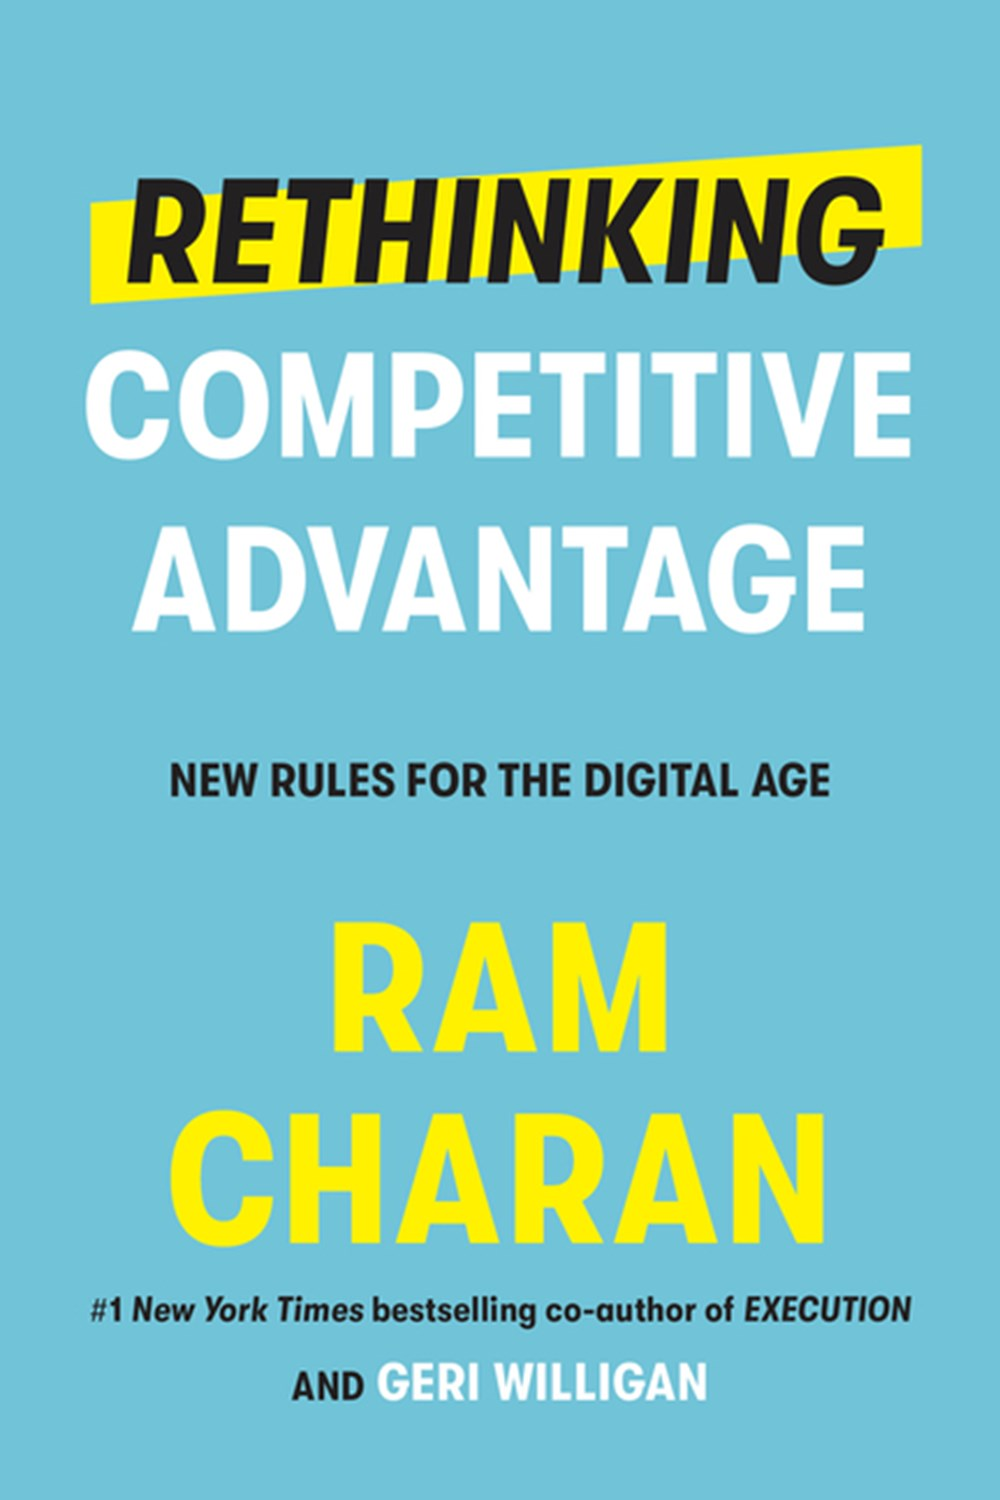 Rethinking Competitive Advantage New Rules for the Digital Age